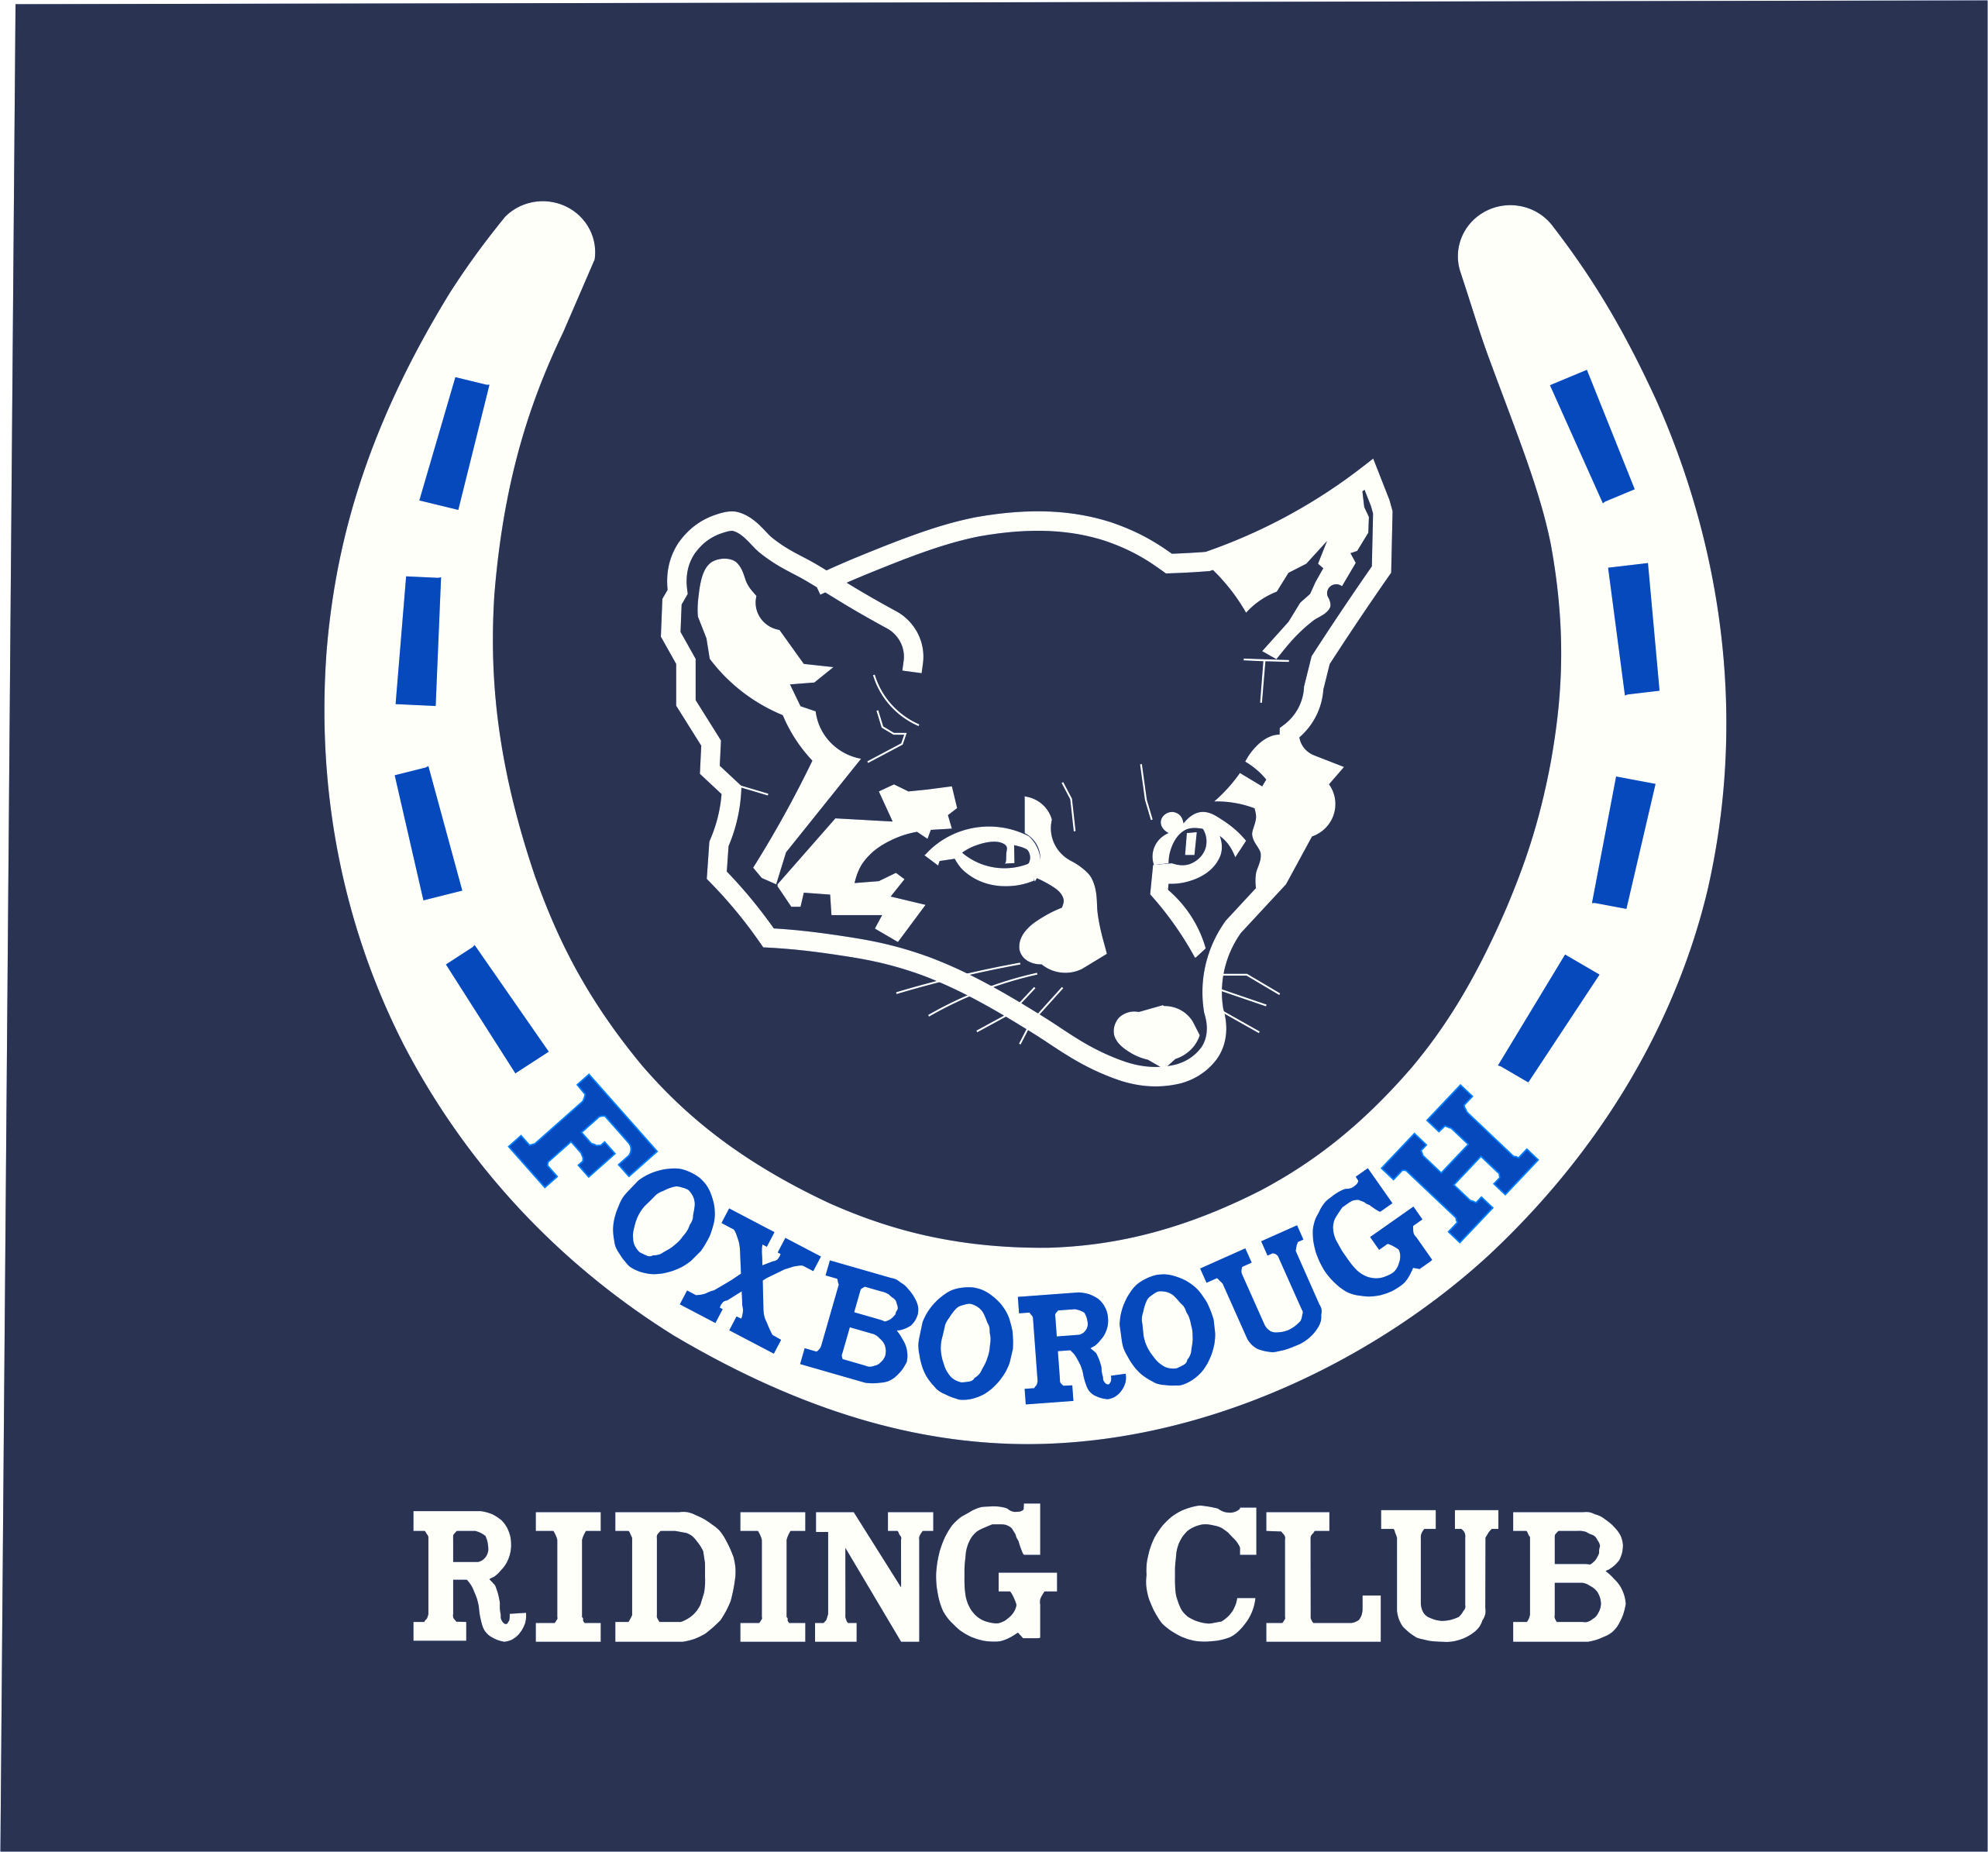 Foxborough rc